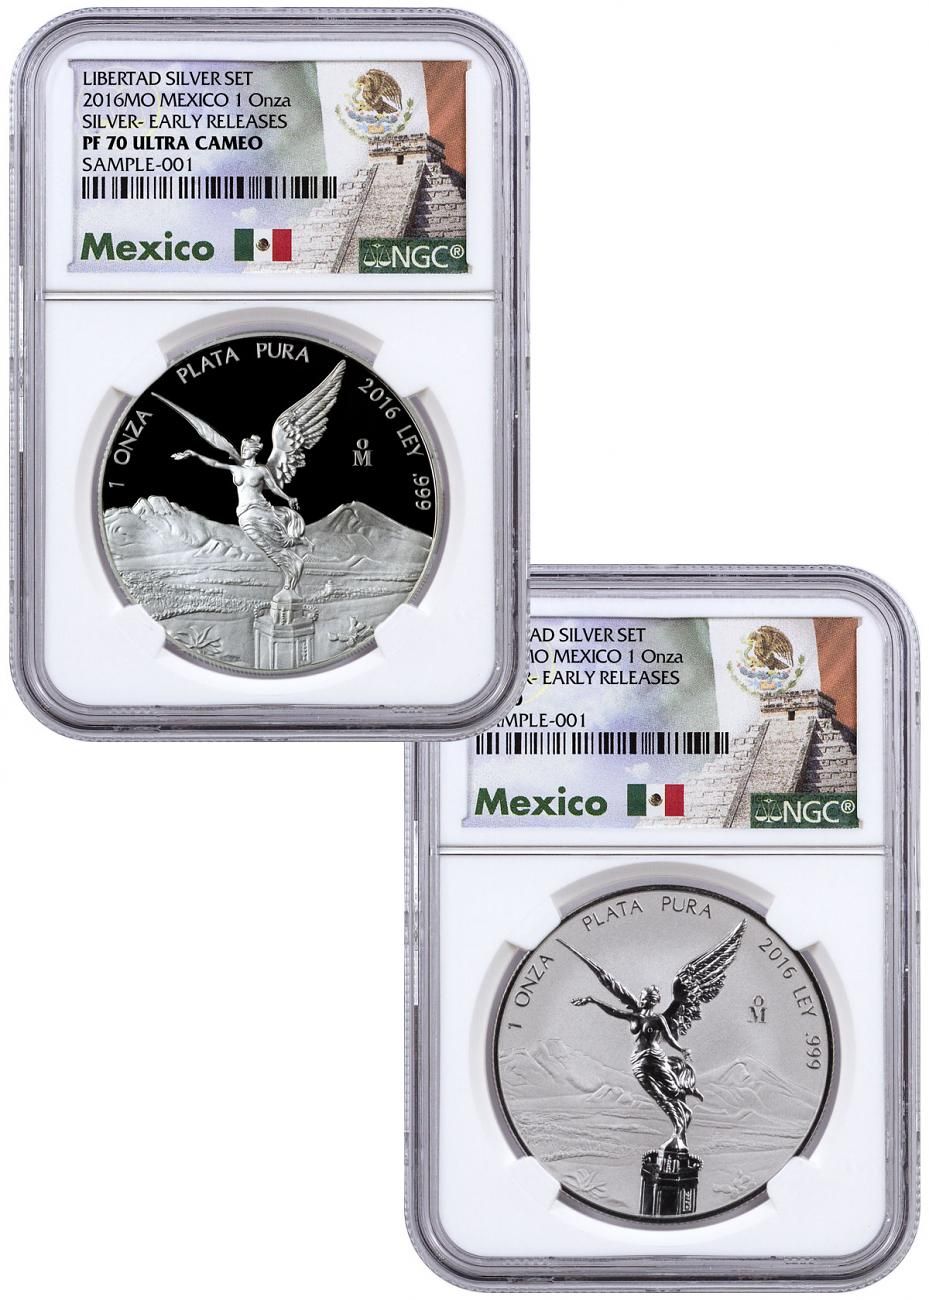 2016 Mexico 1 oz Silver Libertad Proof + Reverse Proof 2-Coin Set NGC PF70 ER (Exclusive Mexico Label)